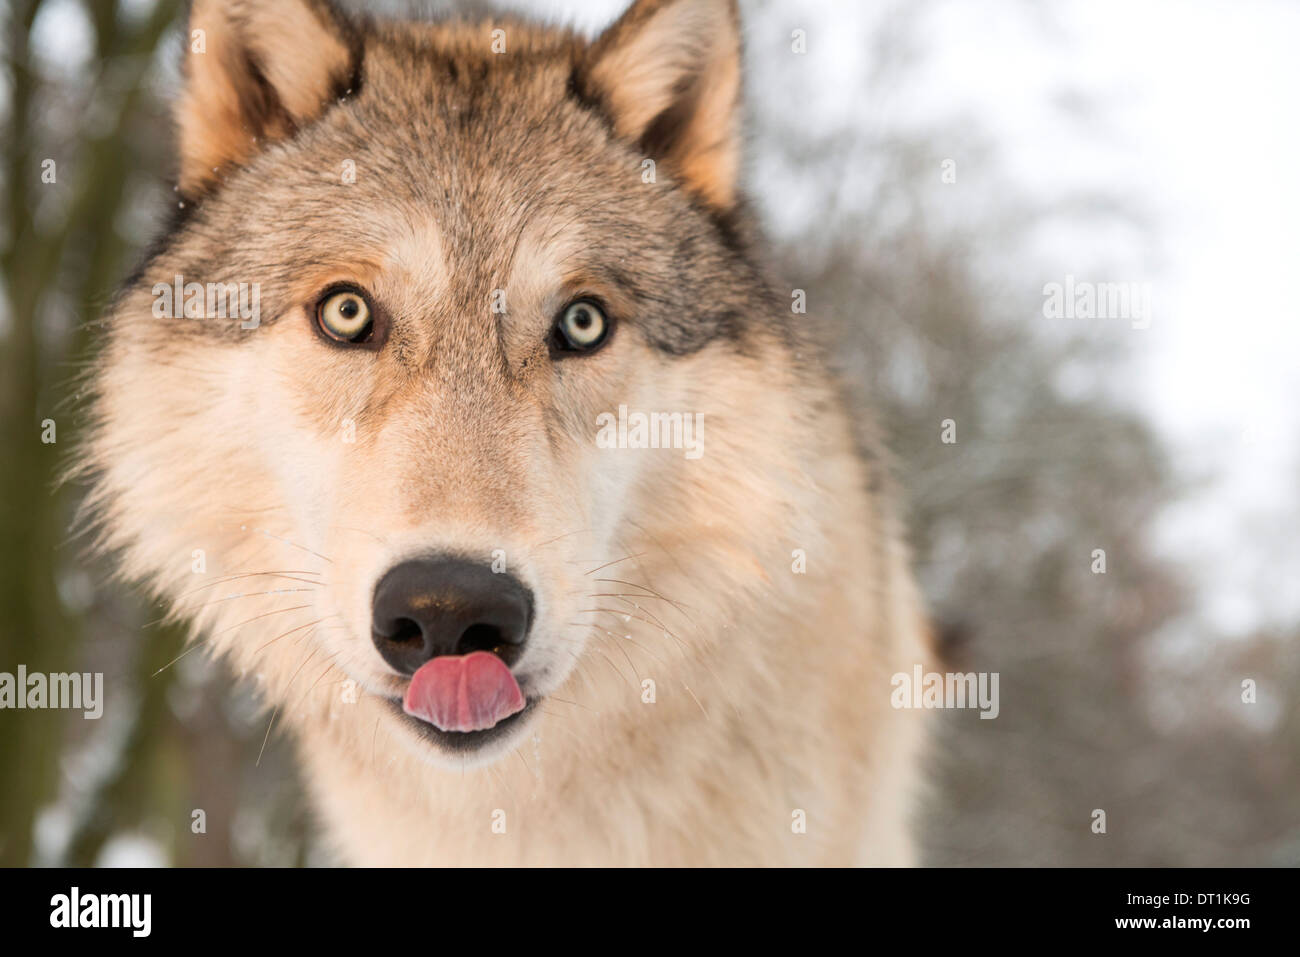 North American Timber wolf (Canis lupus) in forest, Austria, Europe - Stock Image